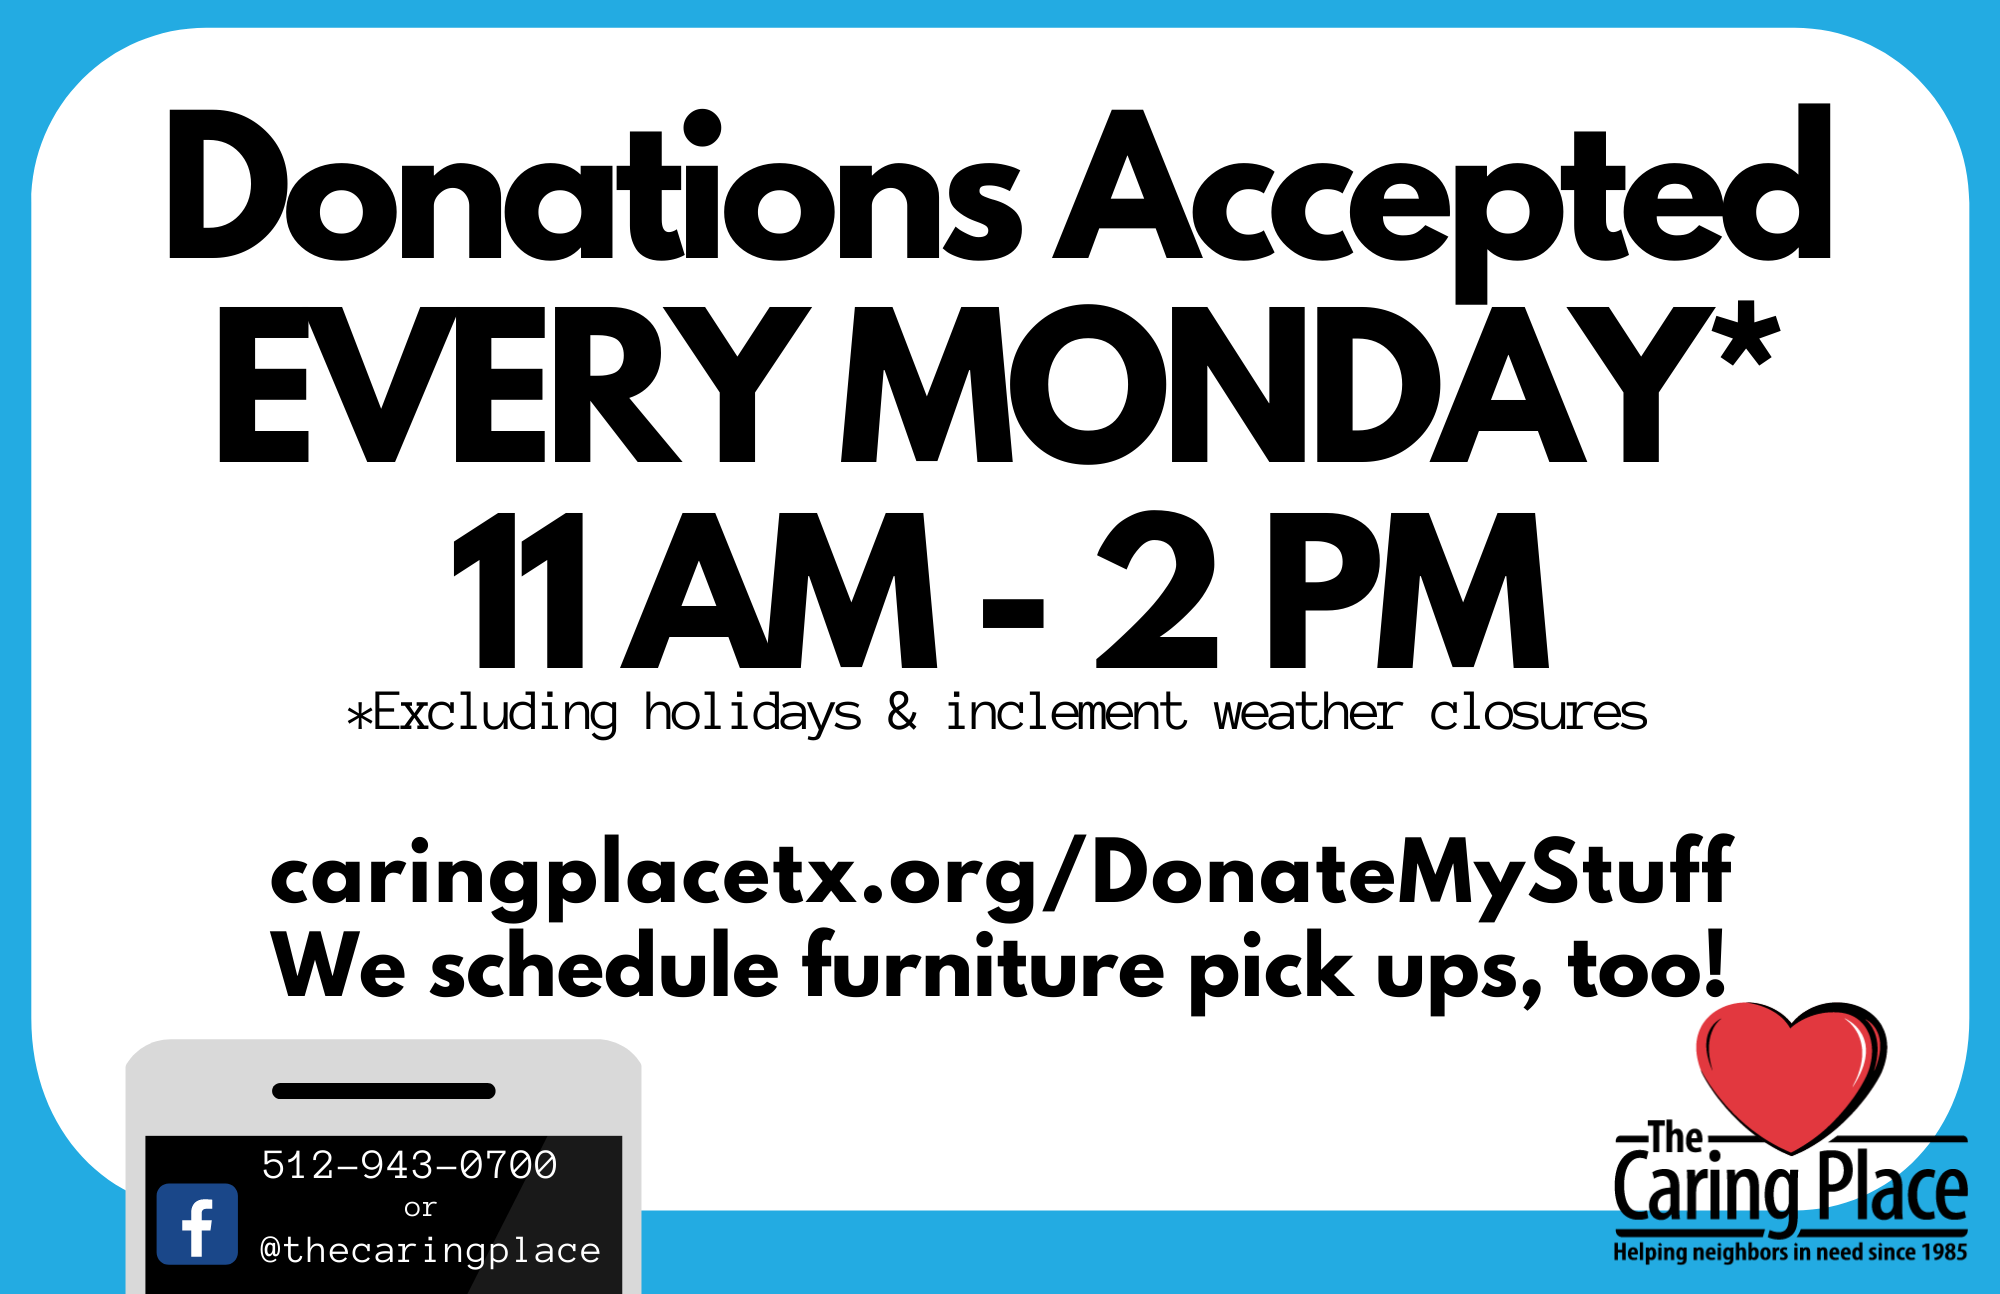 Donations Accepted Every Monday